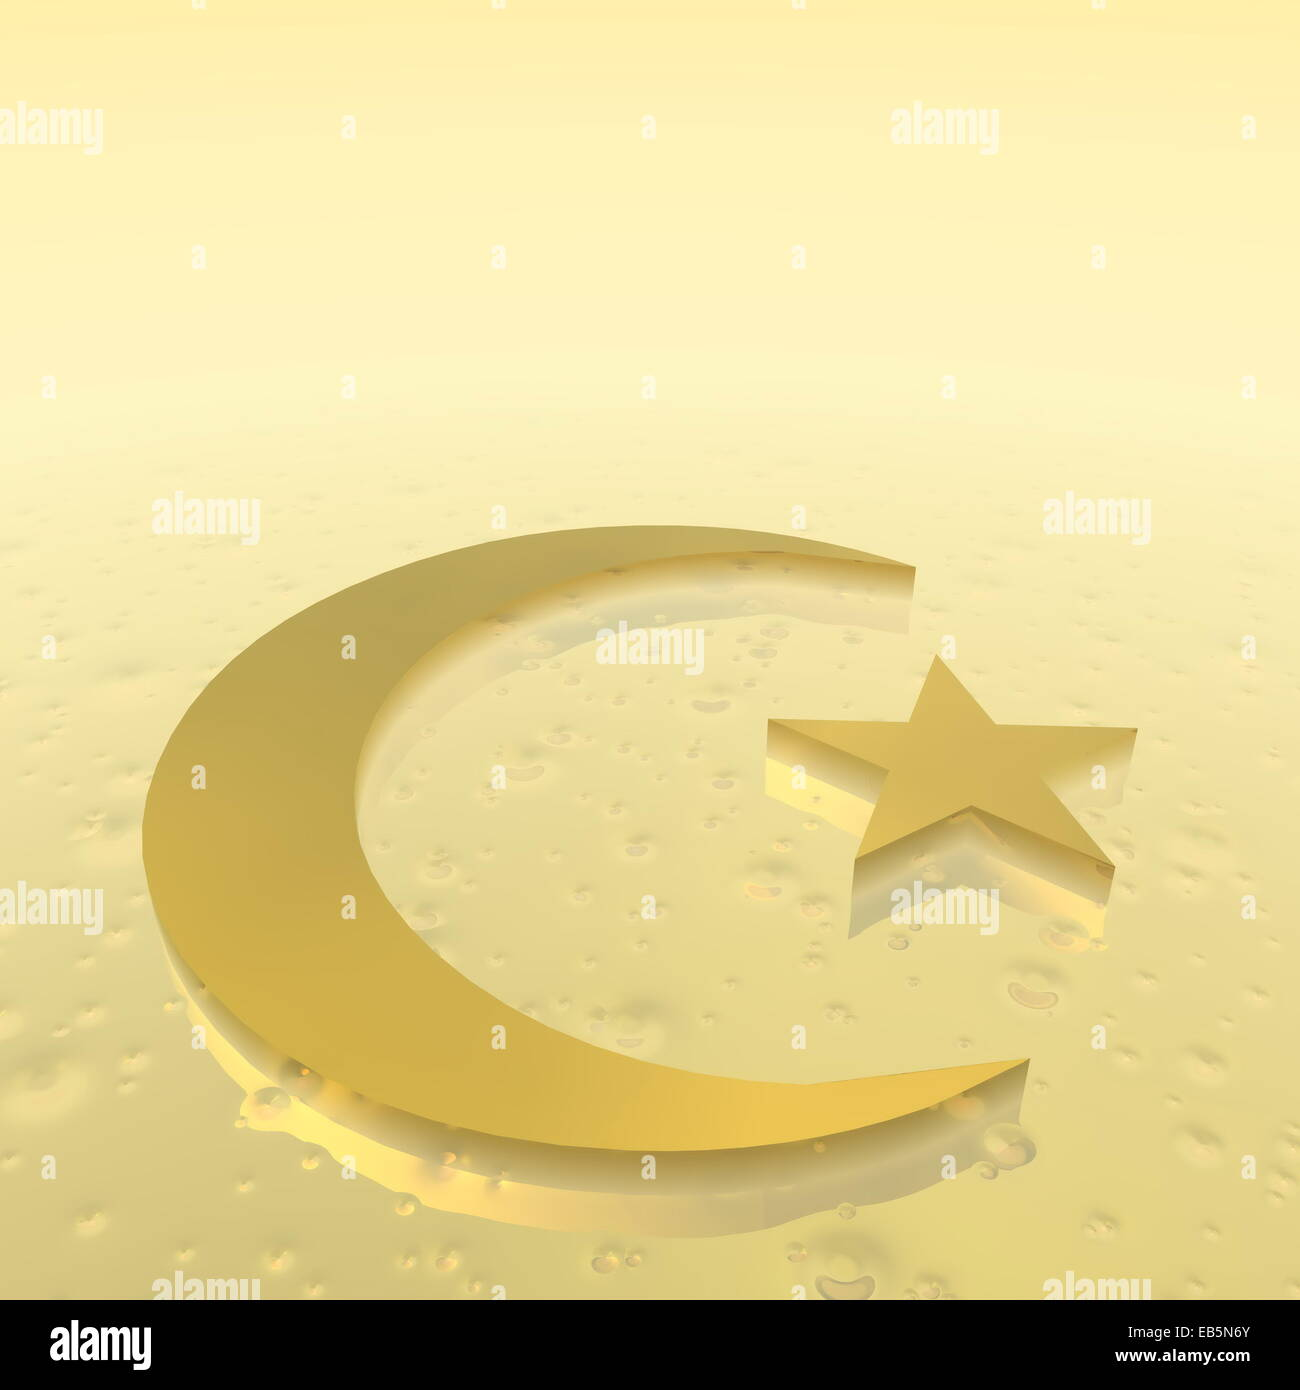 Crescent and star as symbol of islam religion in golden ground crescent and star as symbol of islam religion in golden ground buycottarizona Gallery